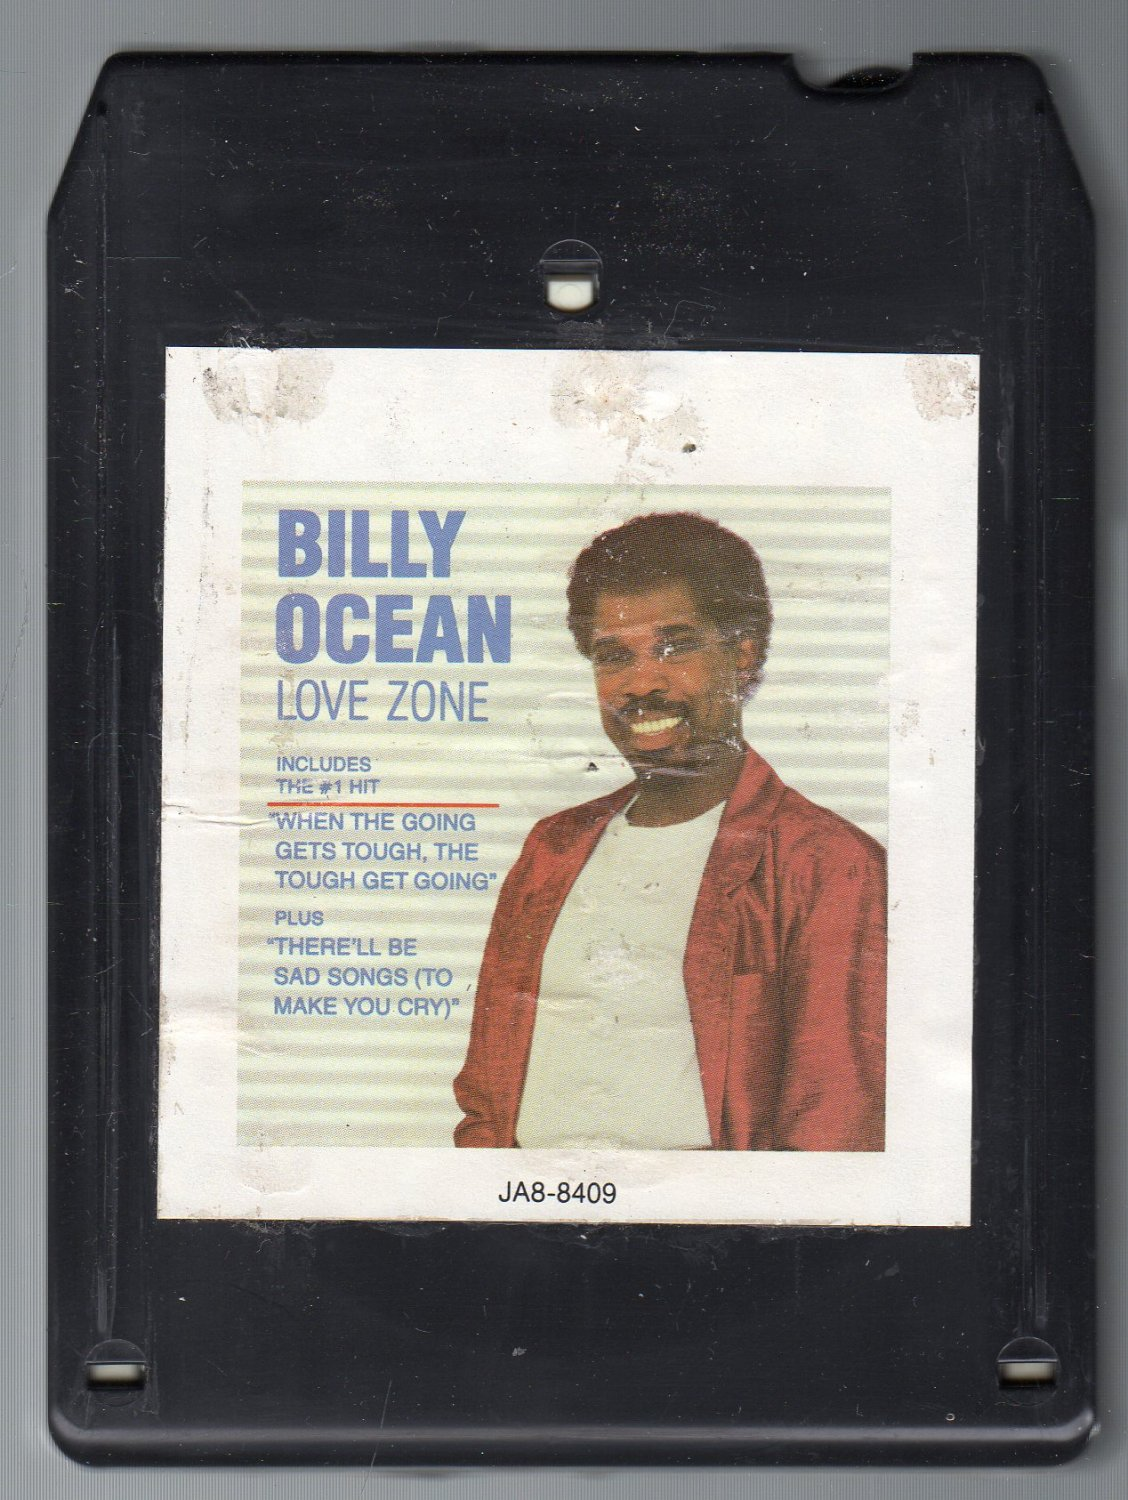 Billy Ocean - Love Zone 1986 CRC SOLD 8-track tape.